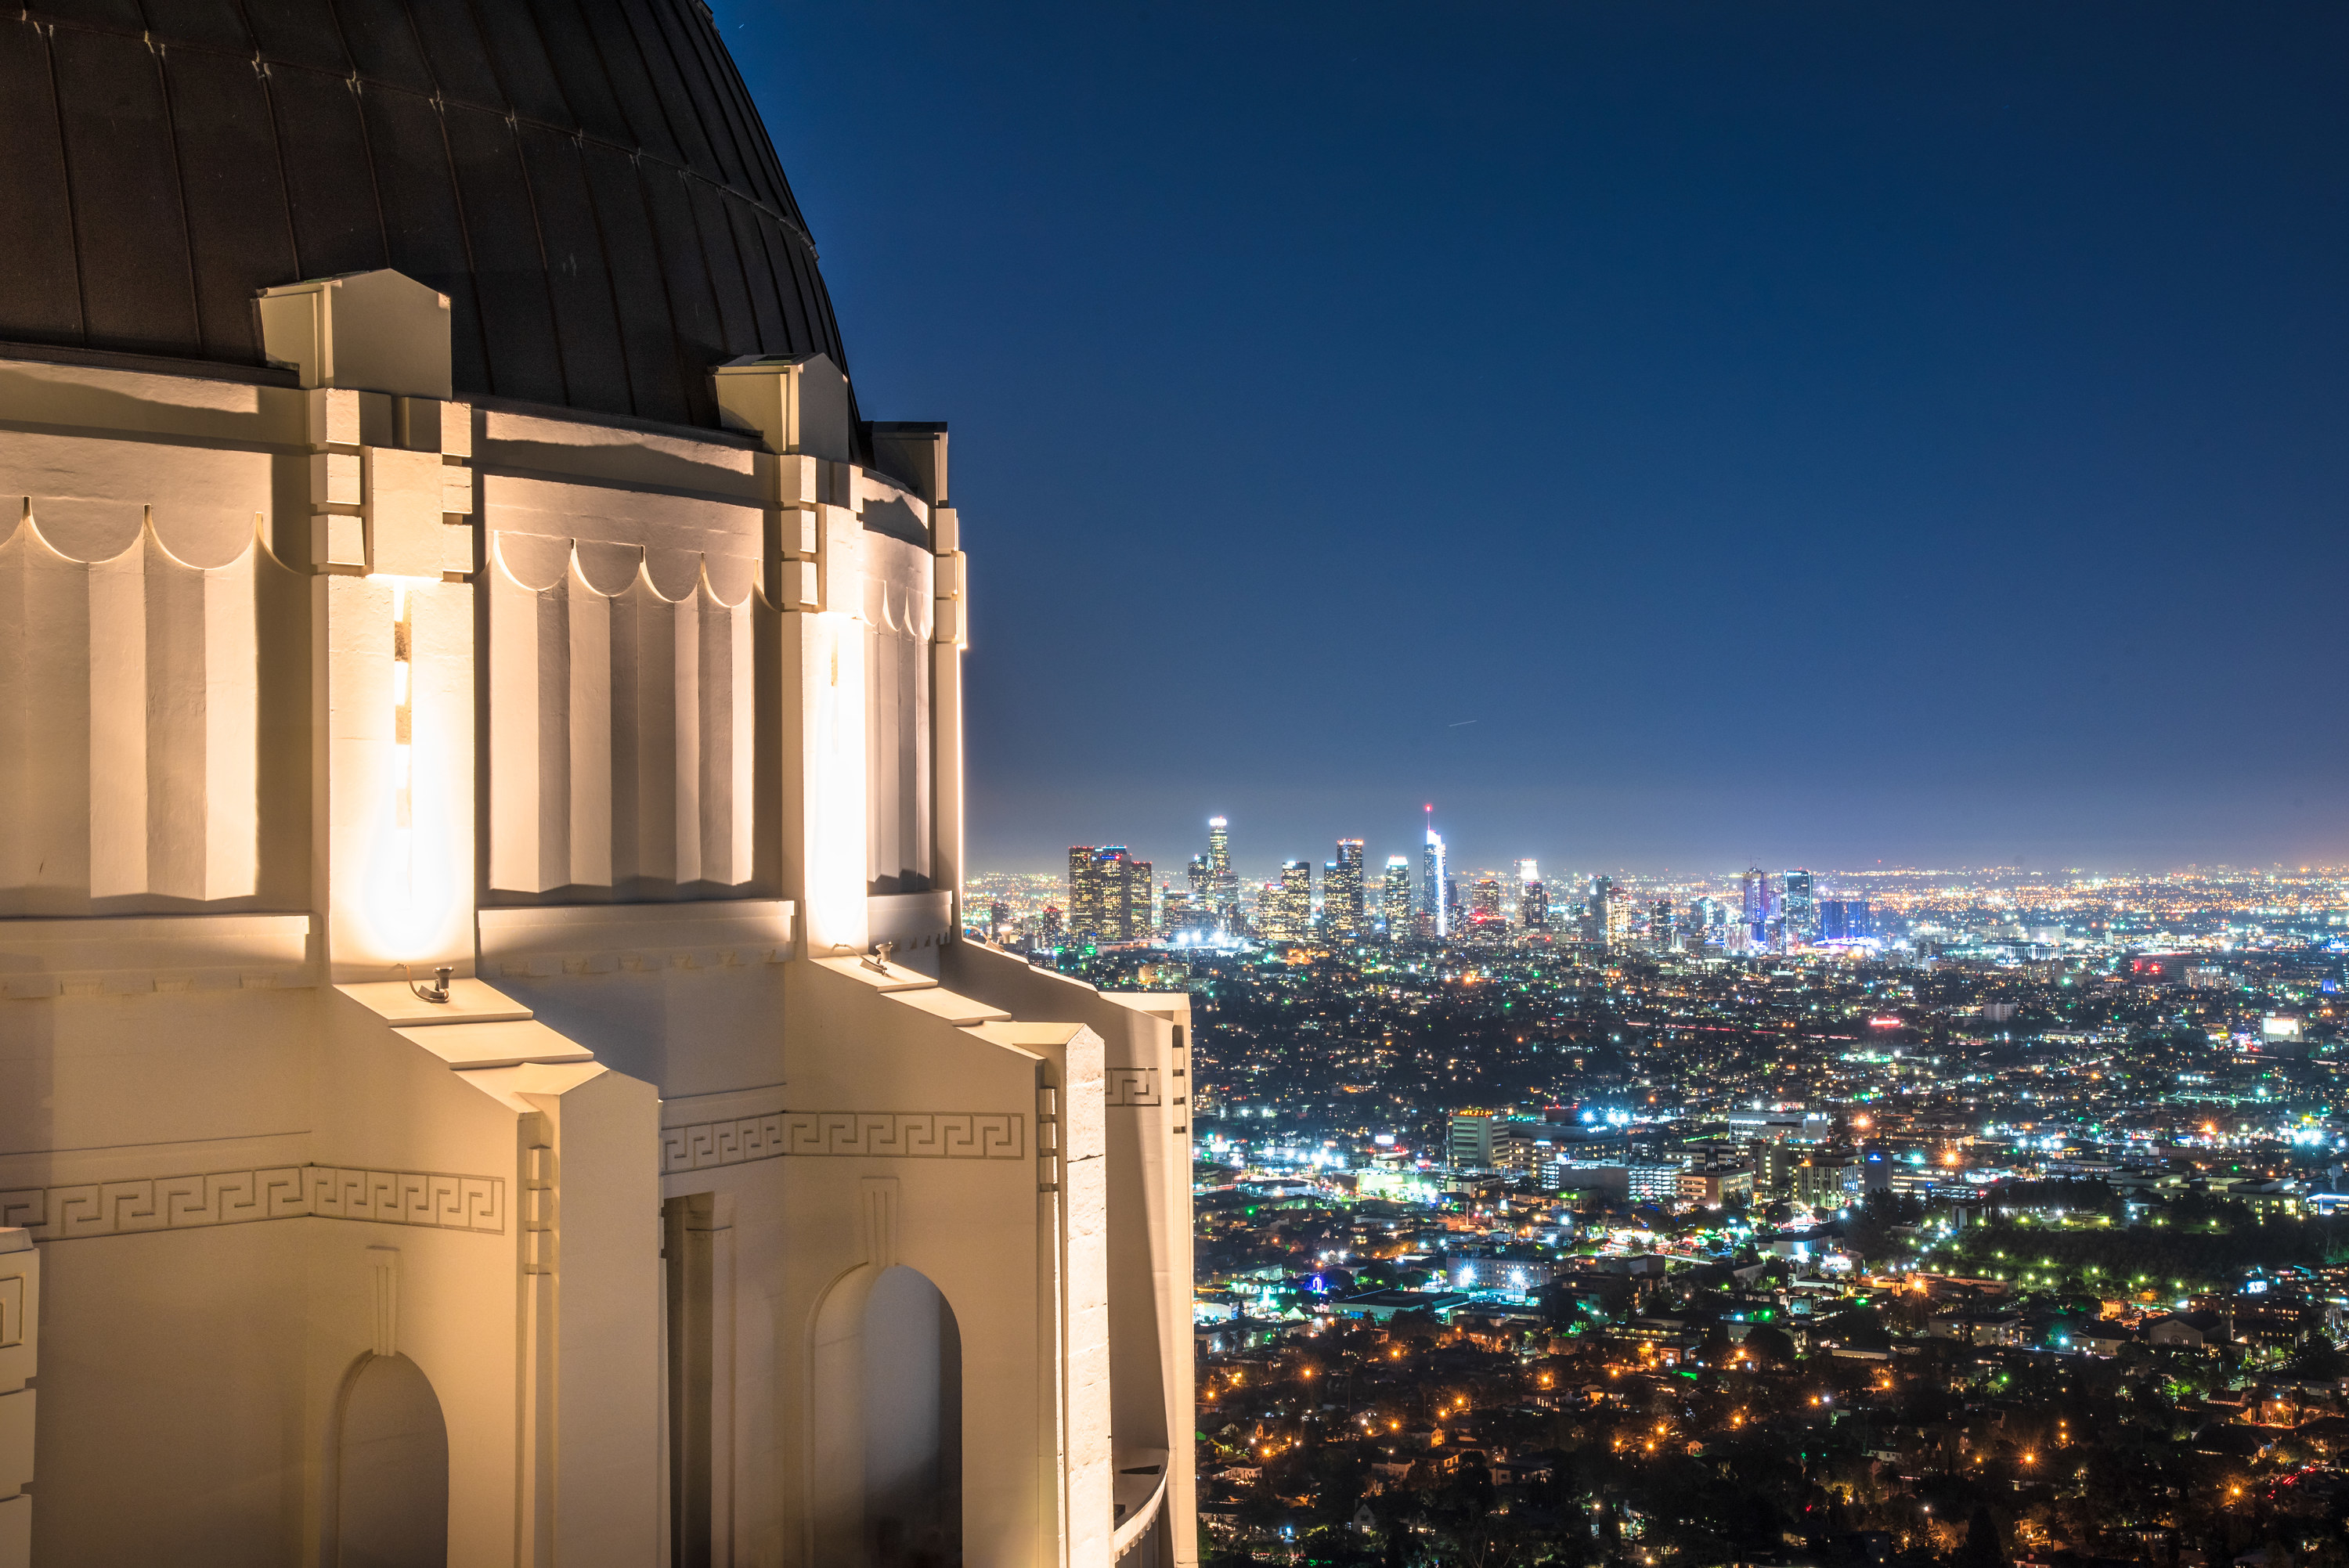 The Griffith Observatory in California